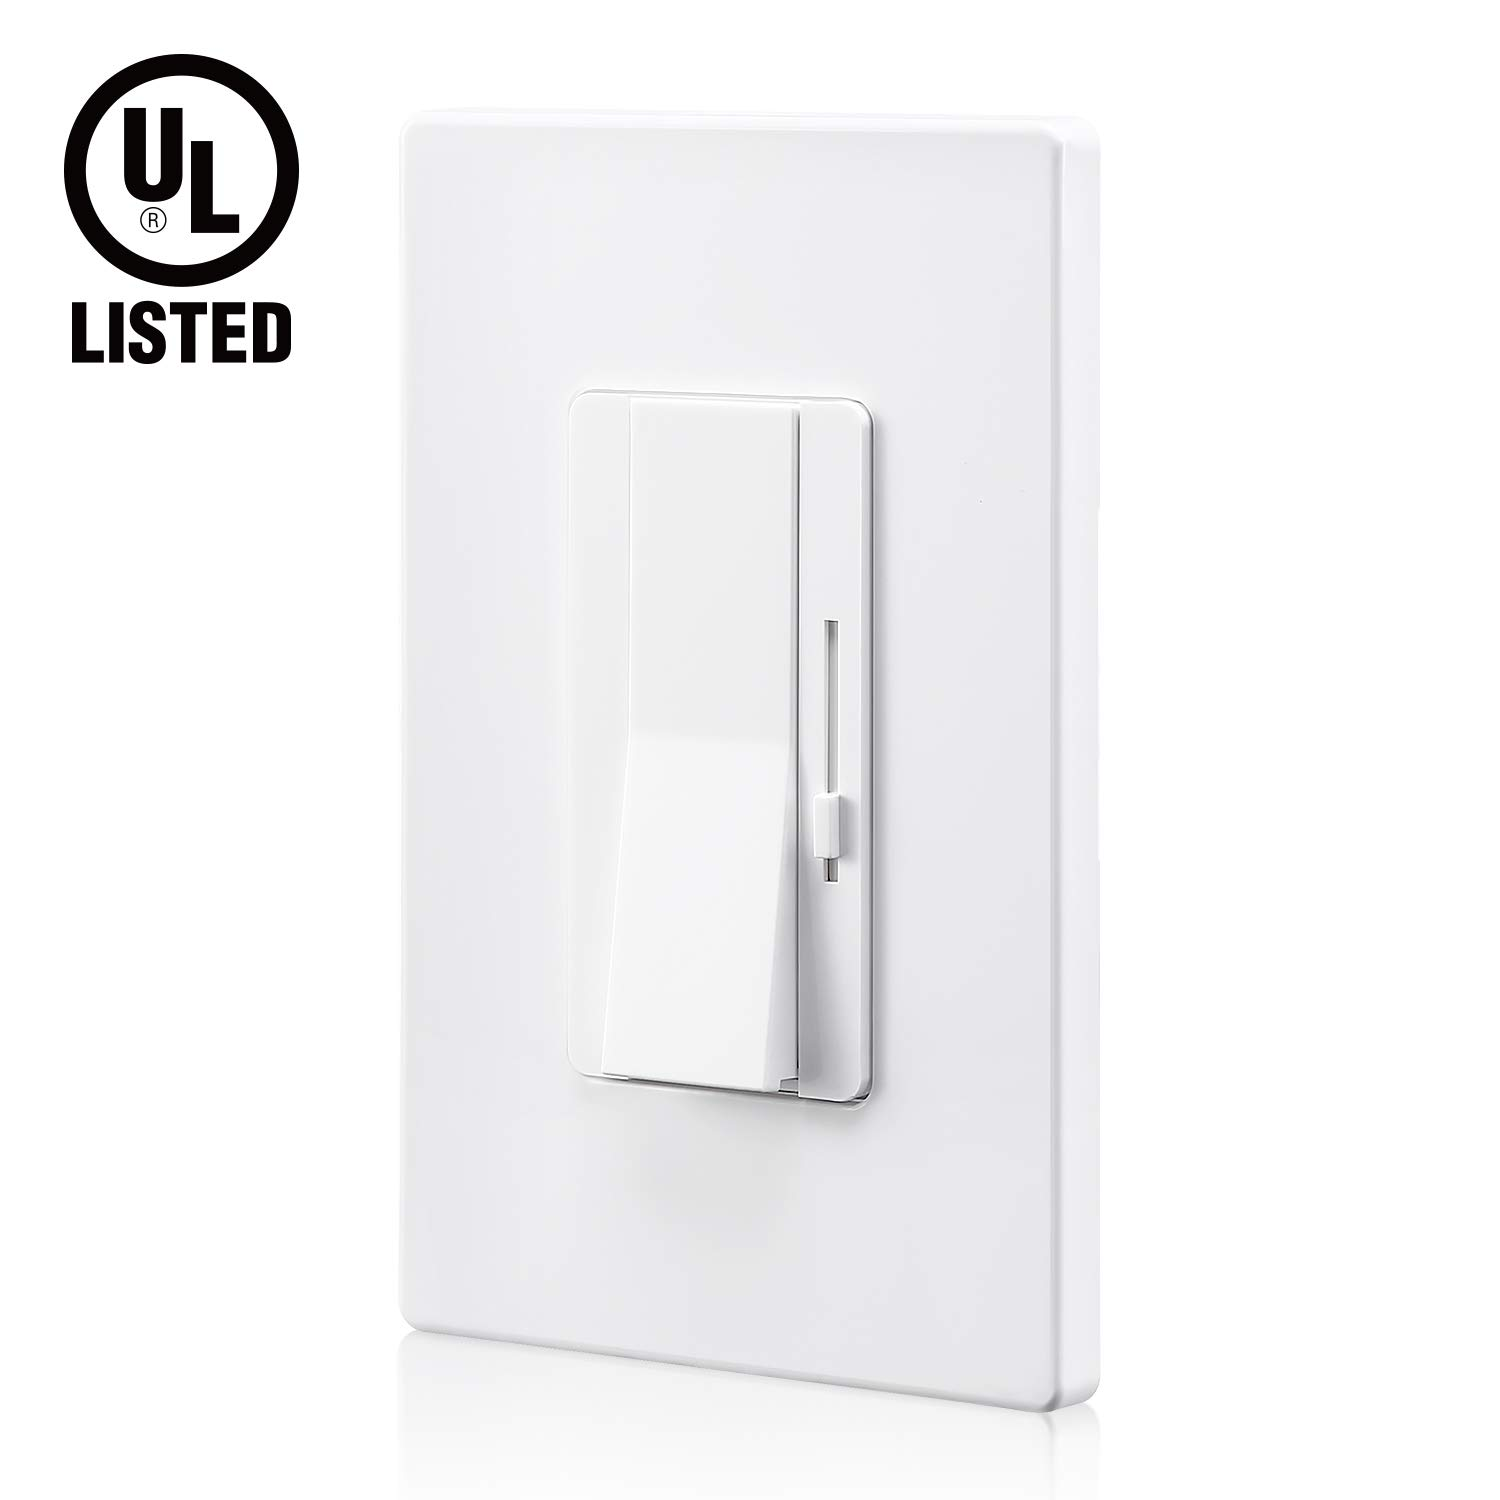 TORCHSTAR 3-Way/Single Pole Dimmer Switch with Slider, UL Listed 0-10V Wall Dimmer, On/Off Rocker Switch, for Controlling LED Lights